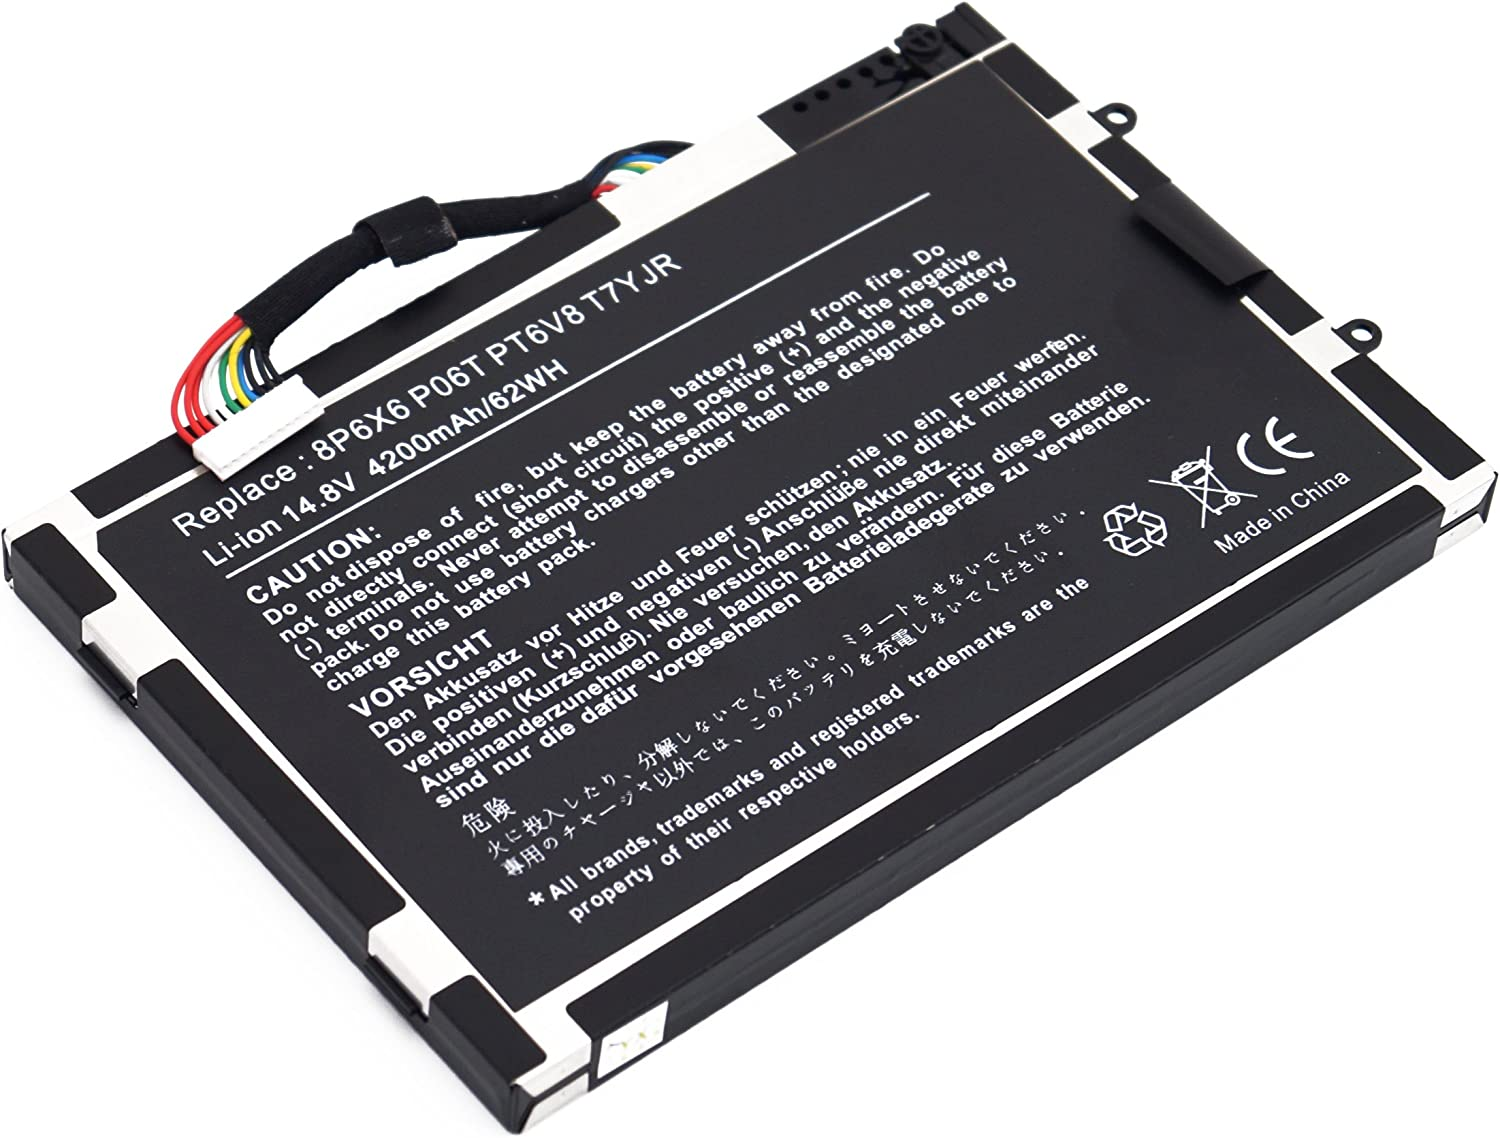 LQM 14.8V 49Wh New Laptop Battery for Dell Alienware M11x M14x R1 R2 R3 8p6x6 P06t Pt6v8 T7yjr 08p6x6